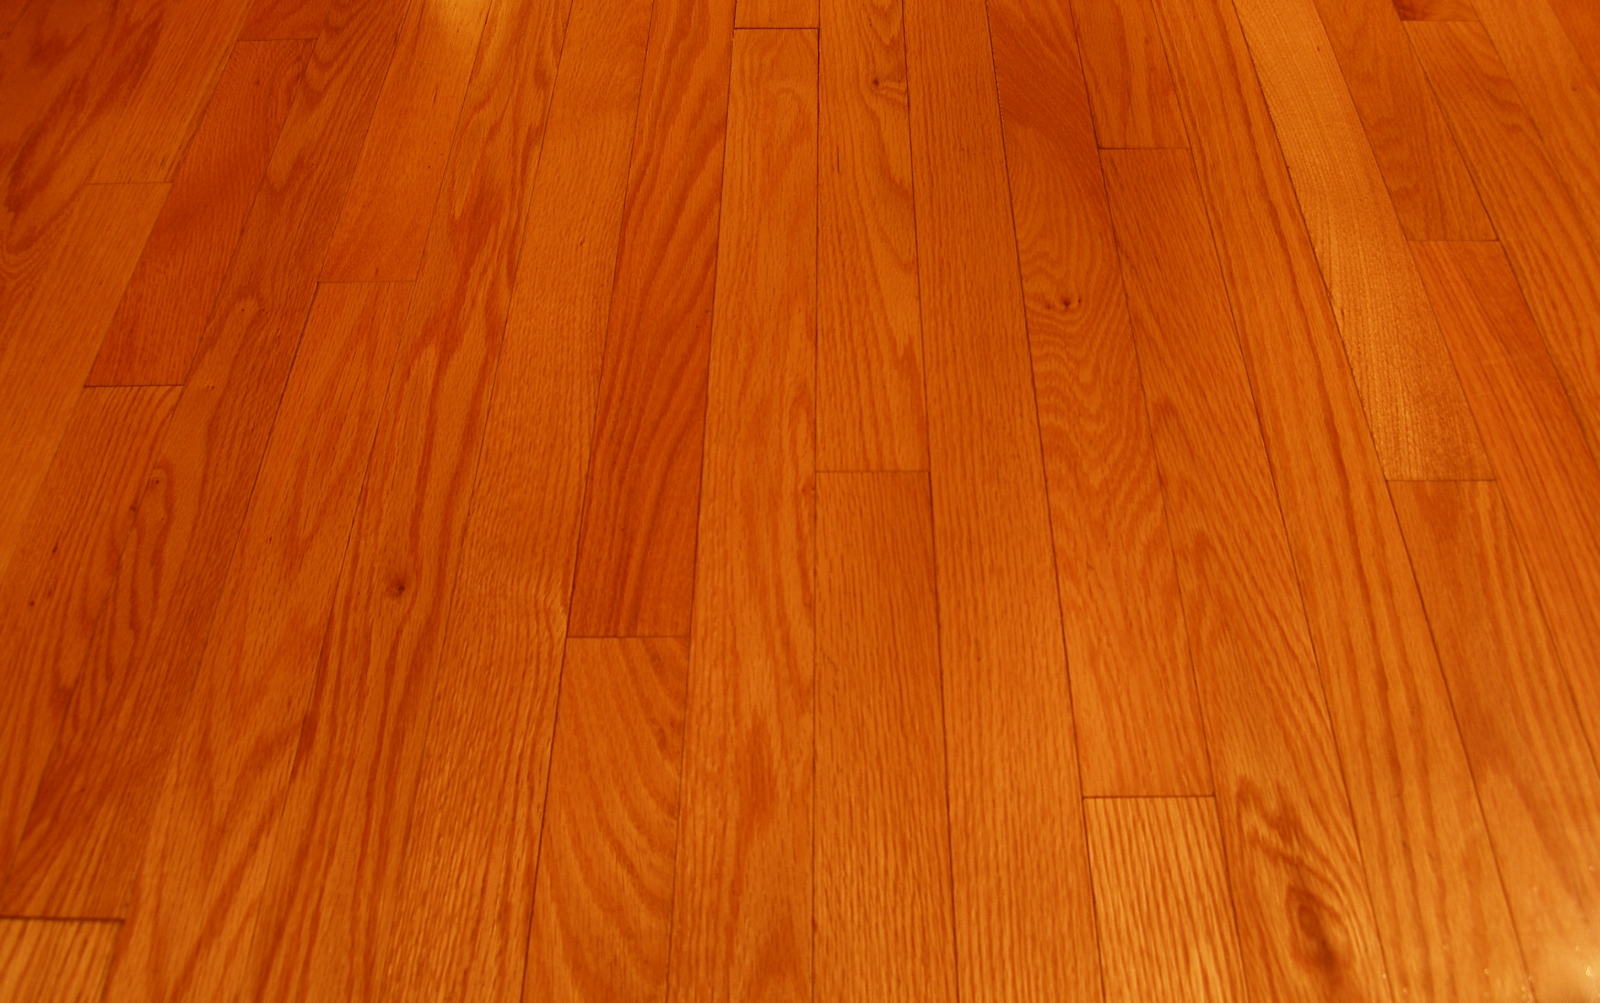 Unique Wood Floors: Choosing Between Solid Vs Engineered ...